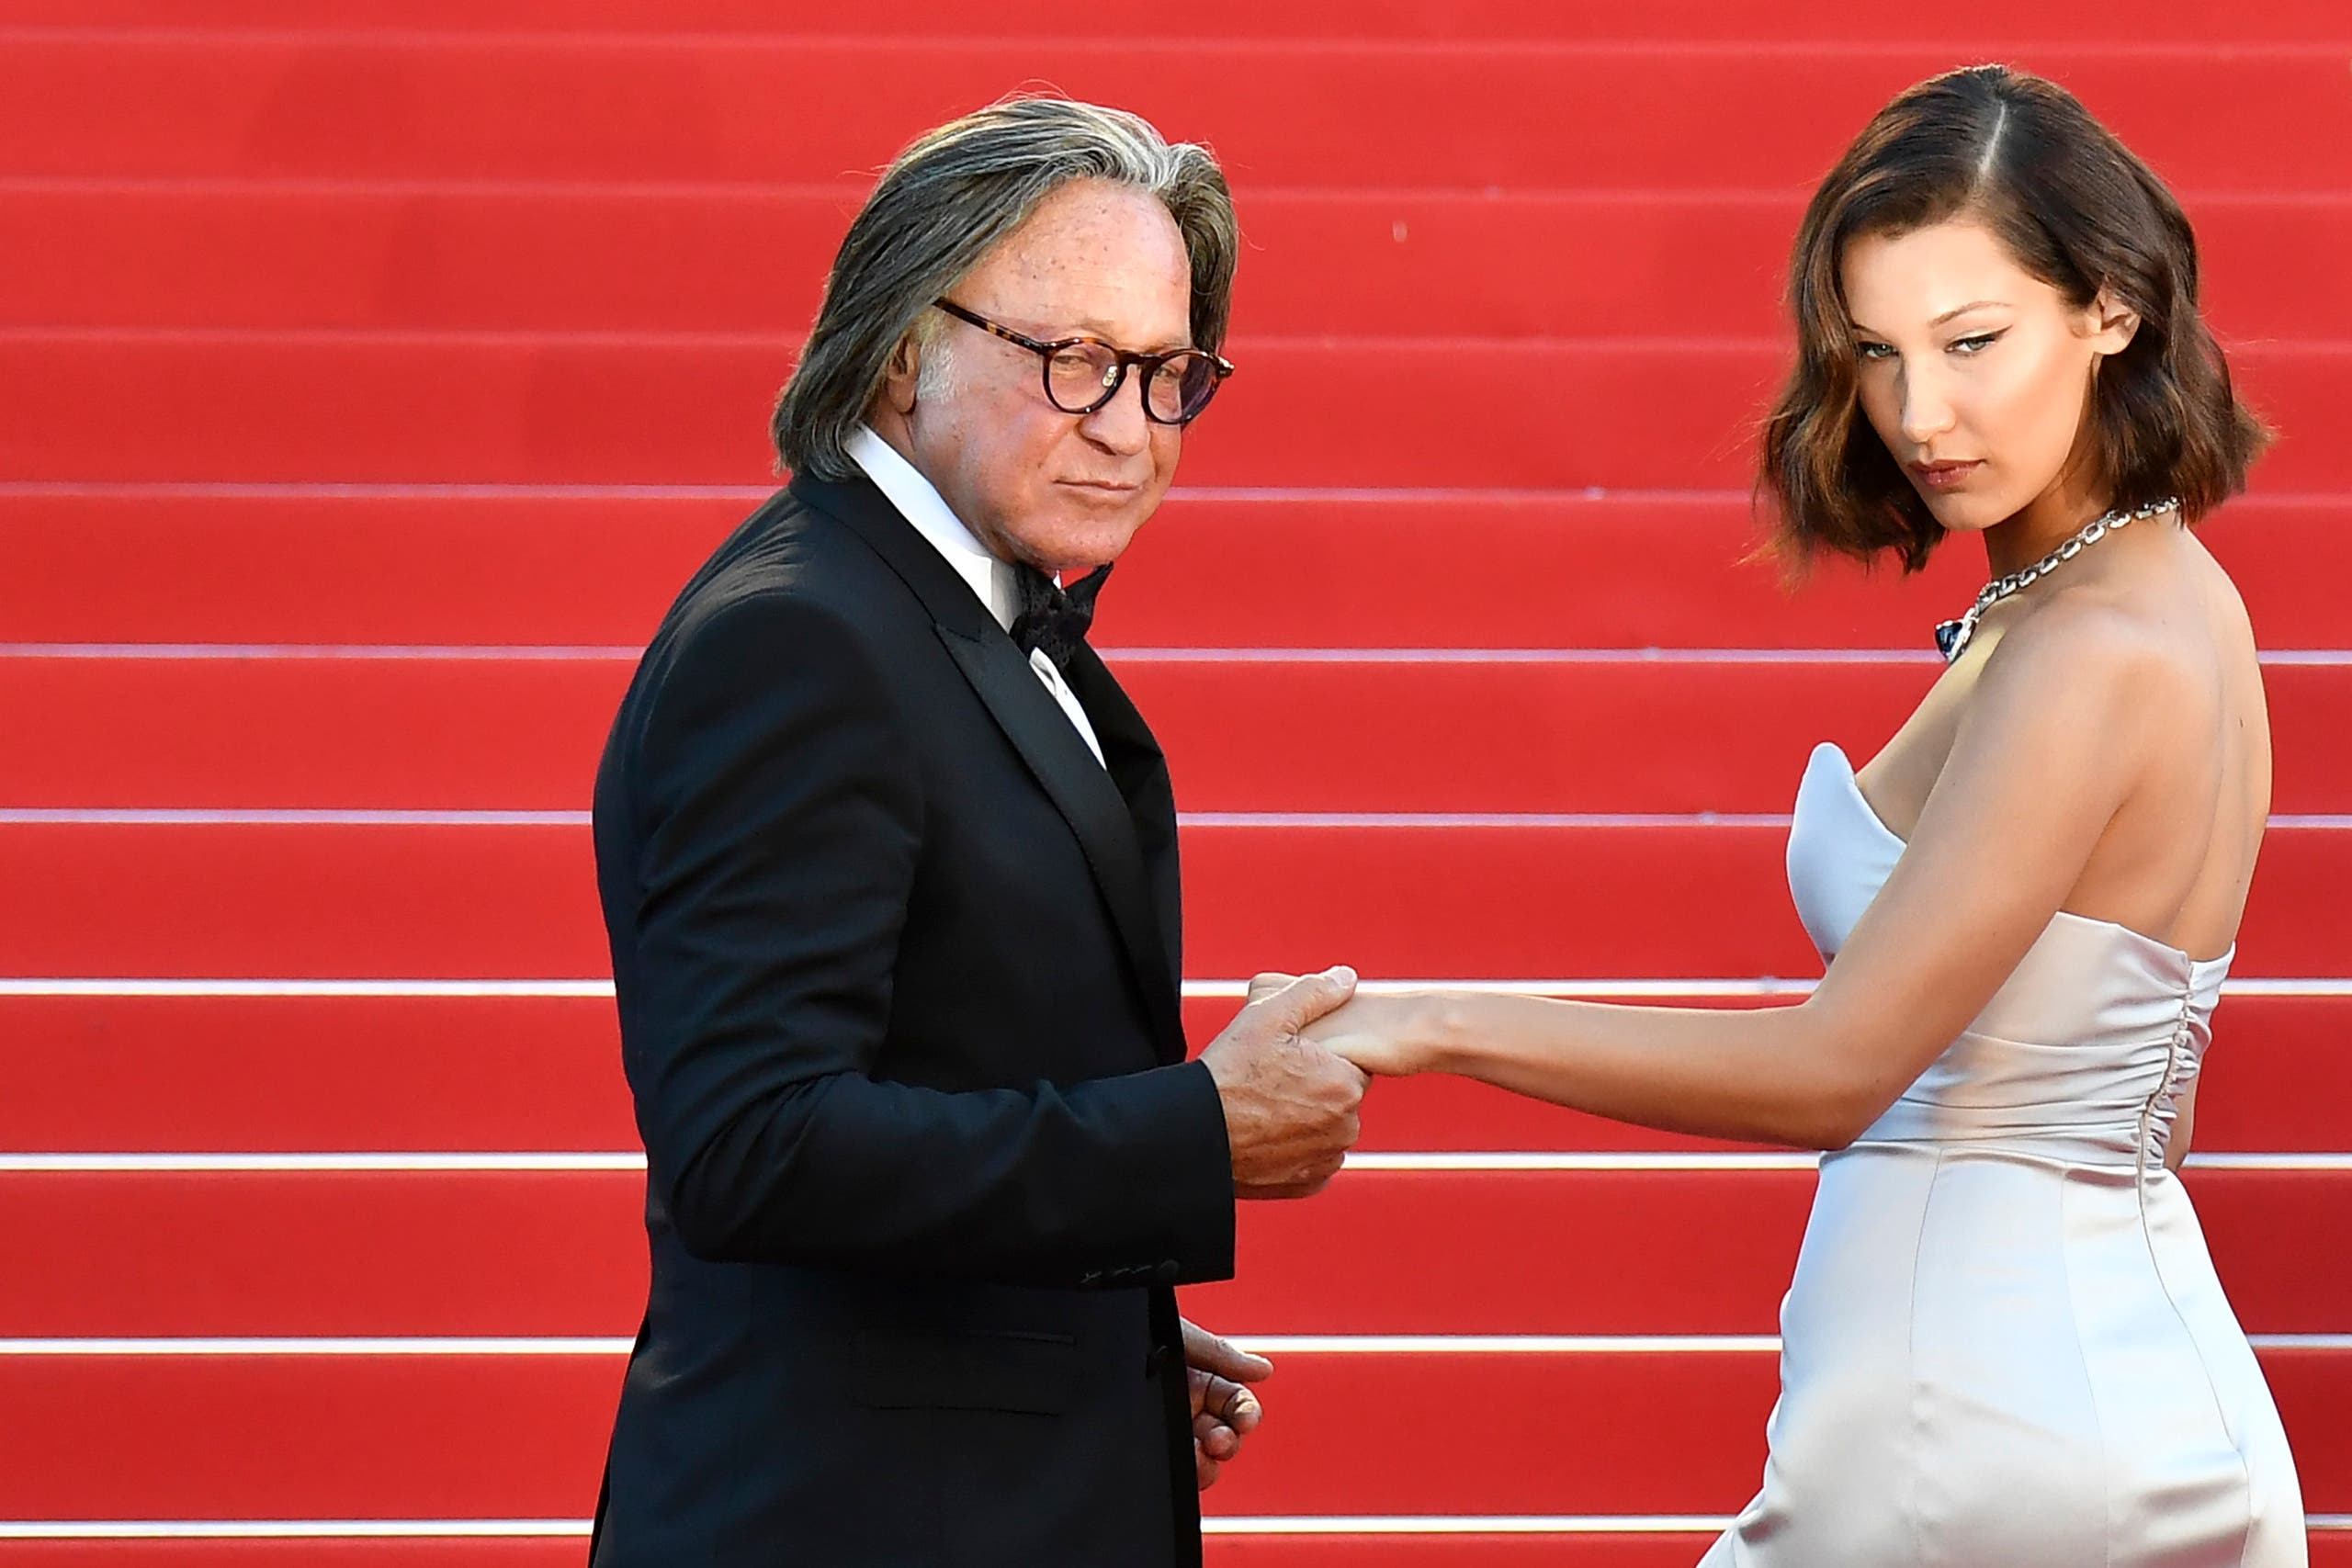 Bella Hadid (R) and her father Mohamed Hadid pose as they arrive on May 17, 2017 for the screening of the film 'Ismael's Ghosts' (Les Fantomes d'Ismael) during the opening ceremony of the 70th edition of the Cannes Film Festival in Cannes, southern France. (File photo: AFP)